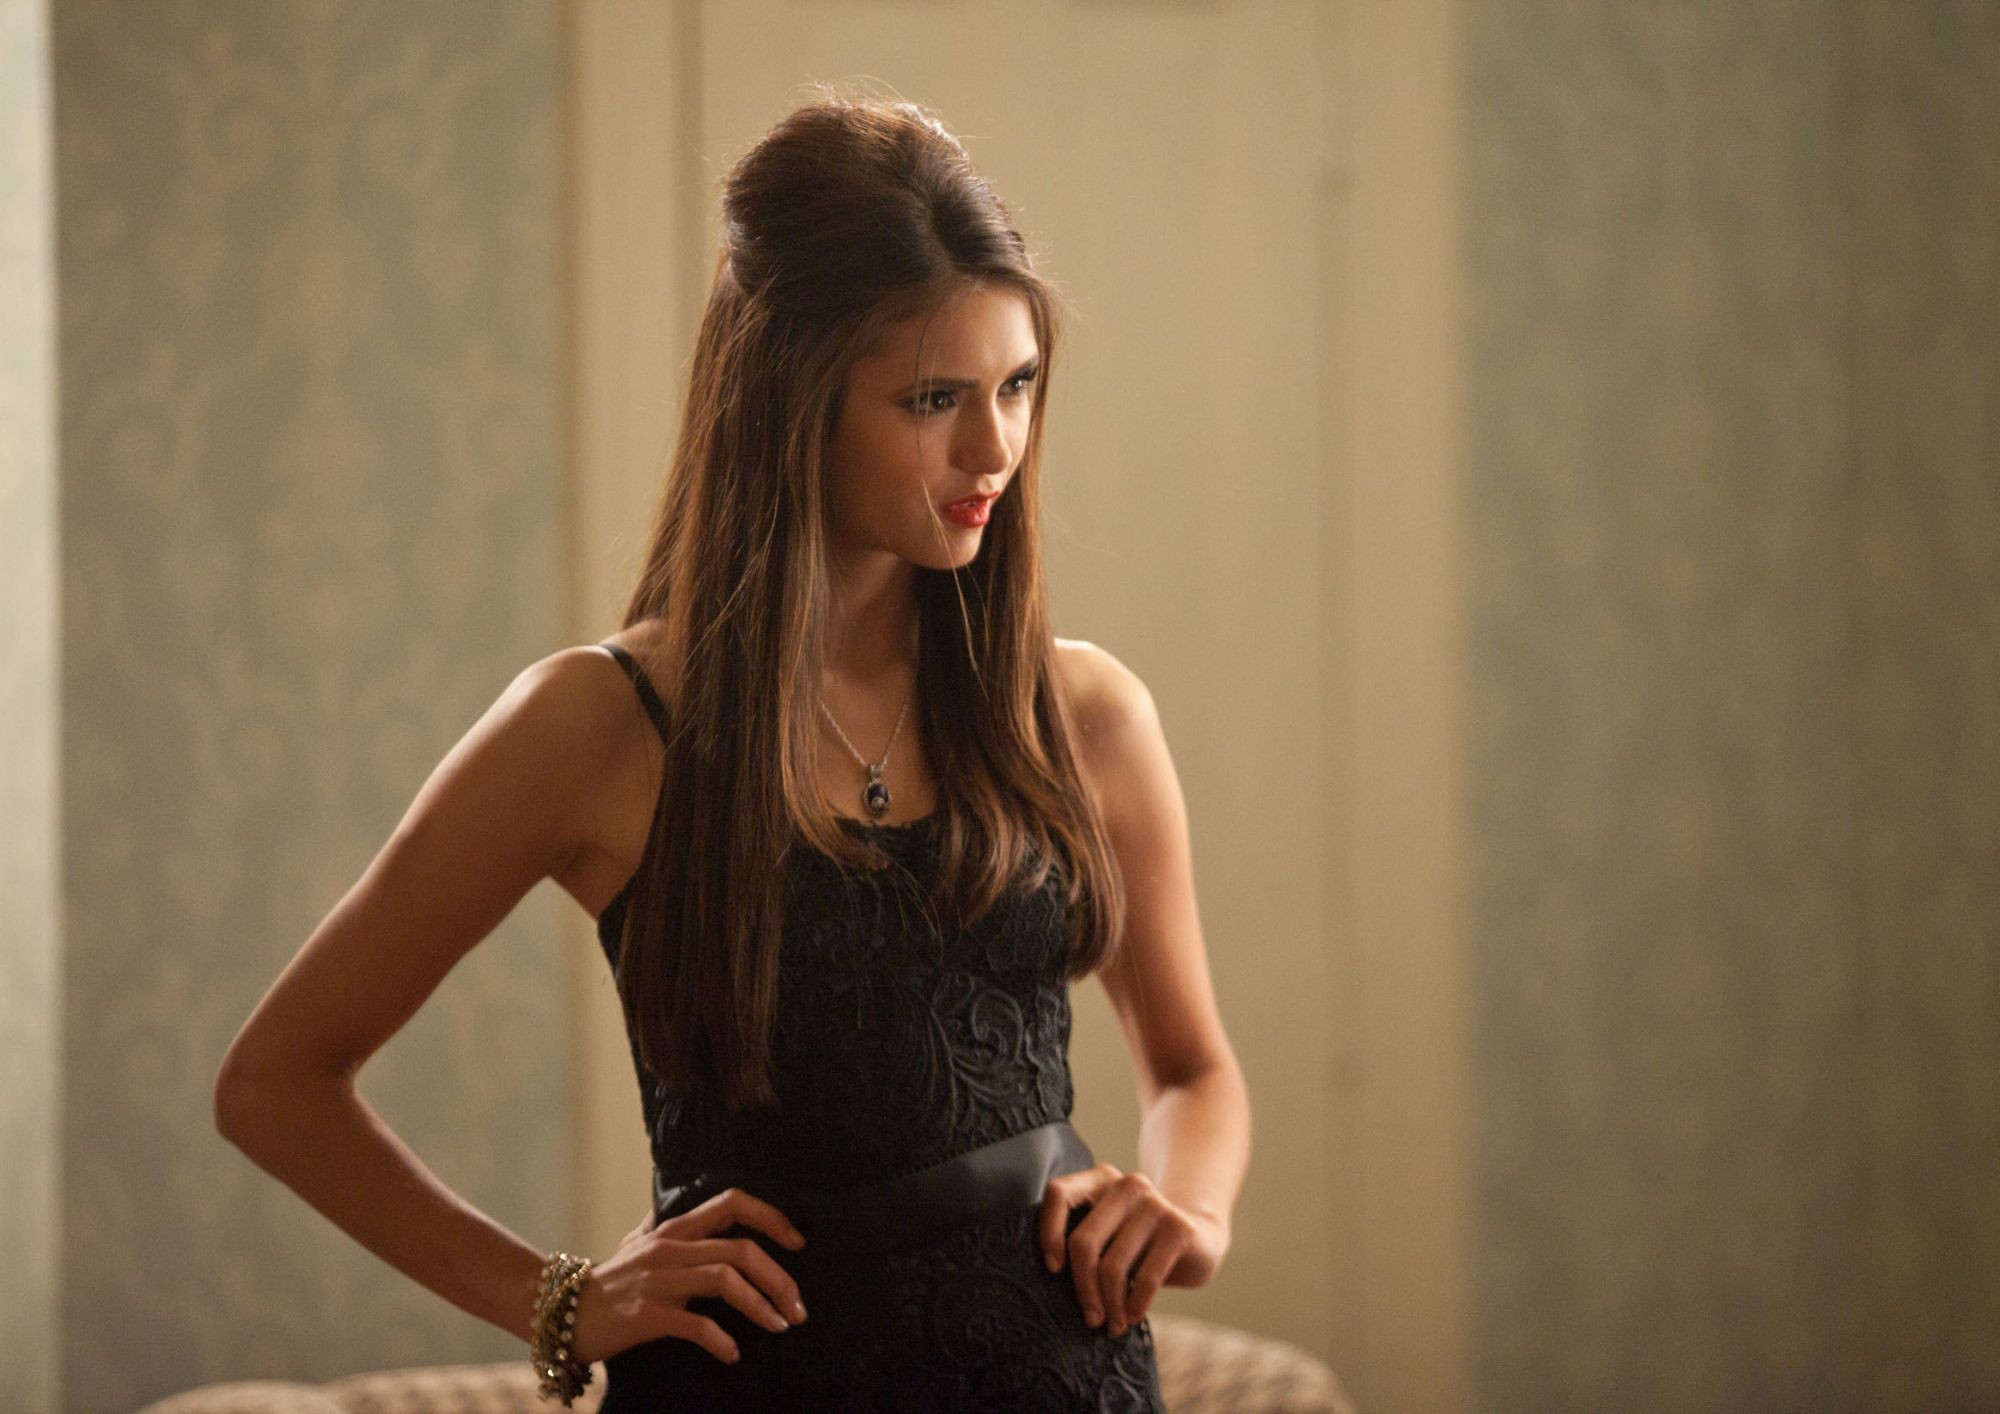 http://images4.fanpop.com/image/photos/16200000/2-07-Masquerade-the-vampire-diaries-16220631-2000-1414.jpg